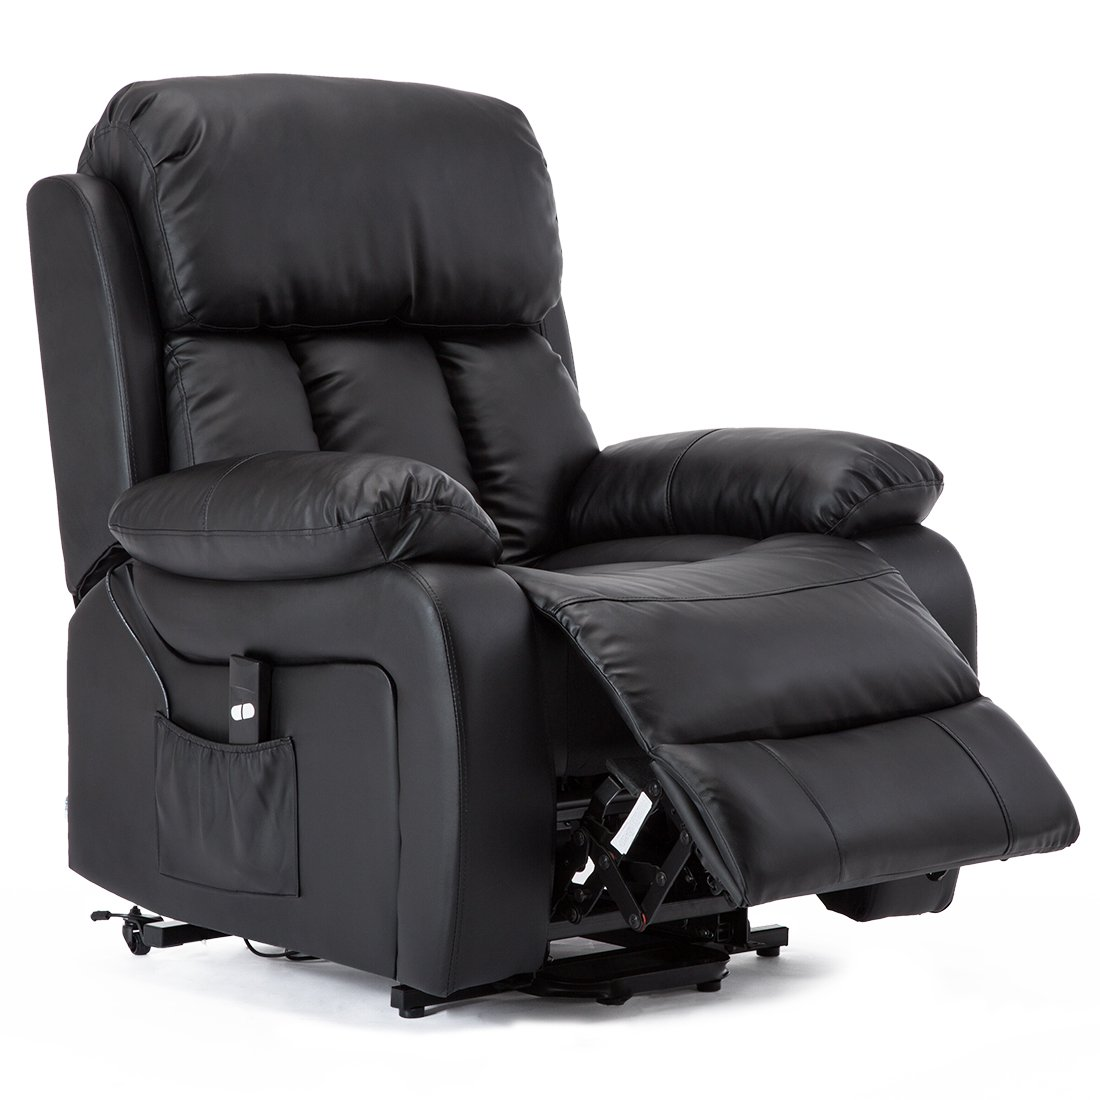 More4Homes CHESTER ELECTRIC RISE RECLINER MASSAGE HEAT